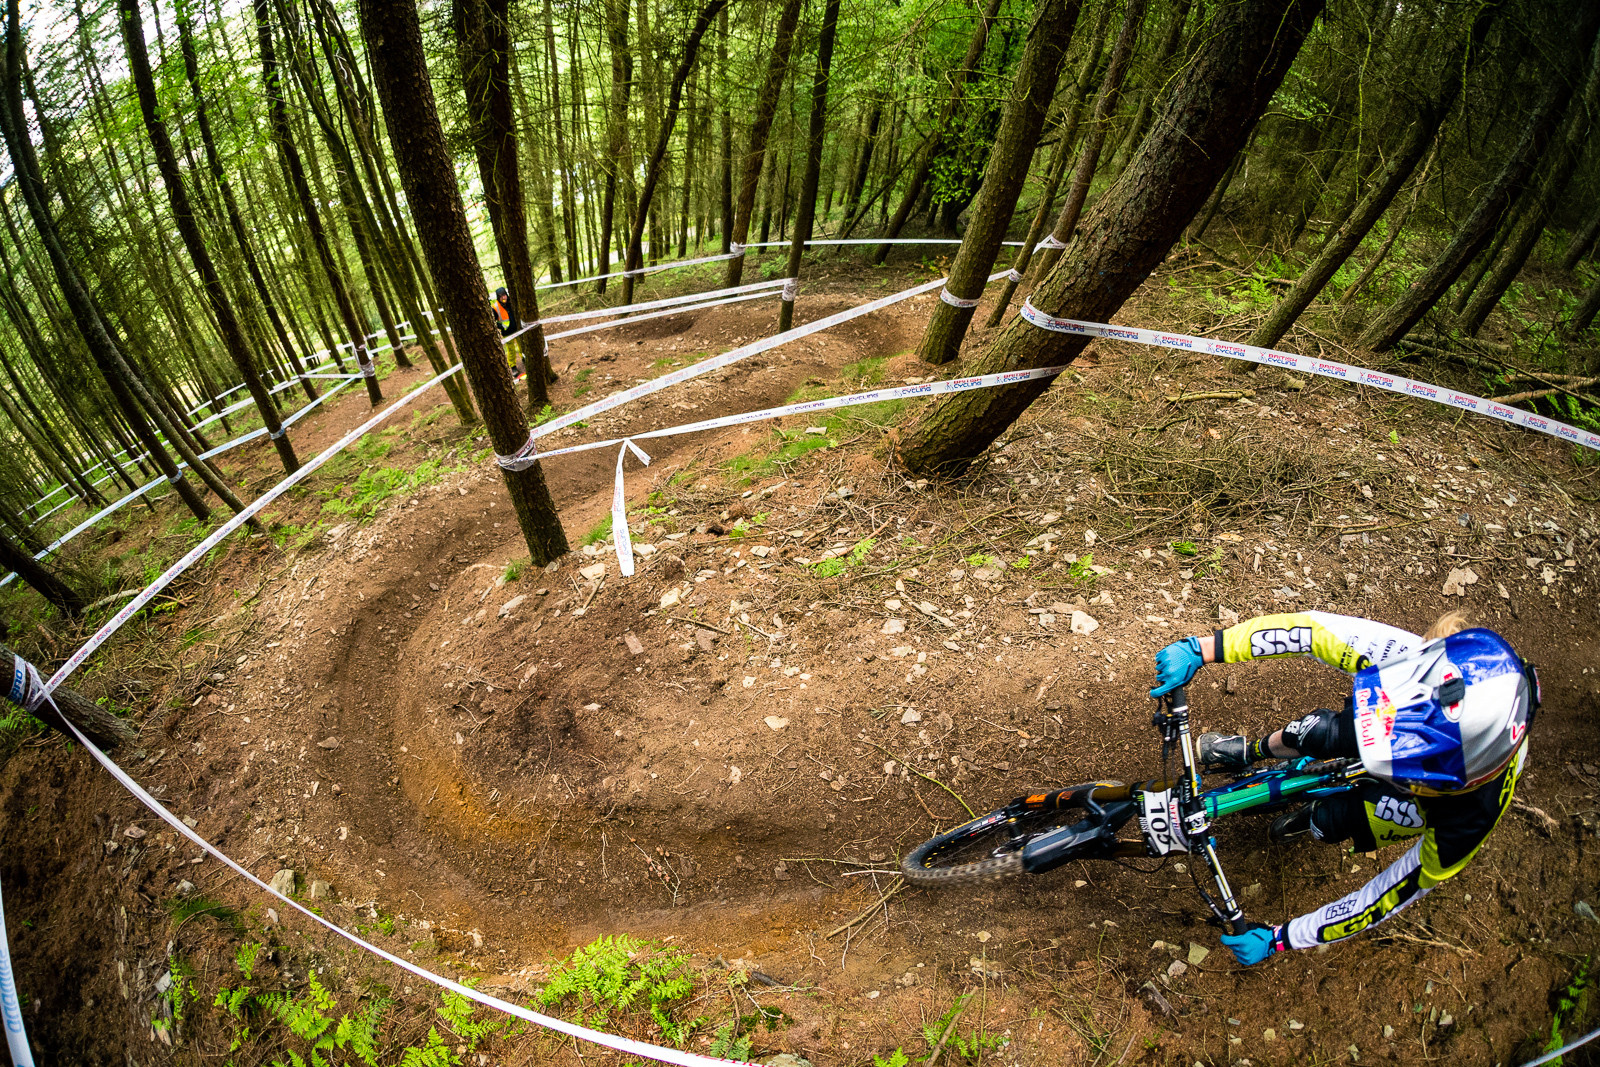 Rachel Atherton, BDS Llangollen - RACE REPORT - British Downhill Series Llangollen - Mountain Biking Pictures - Vital MTB